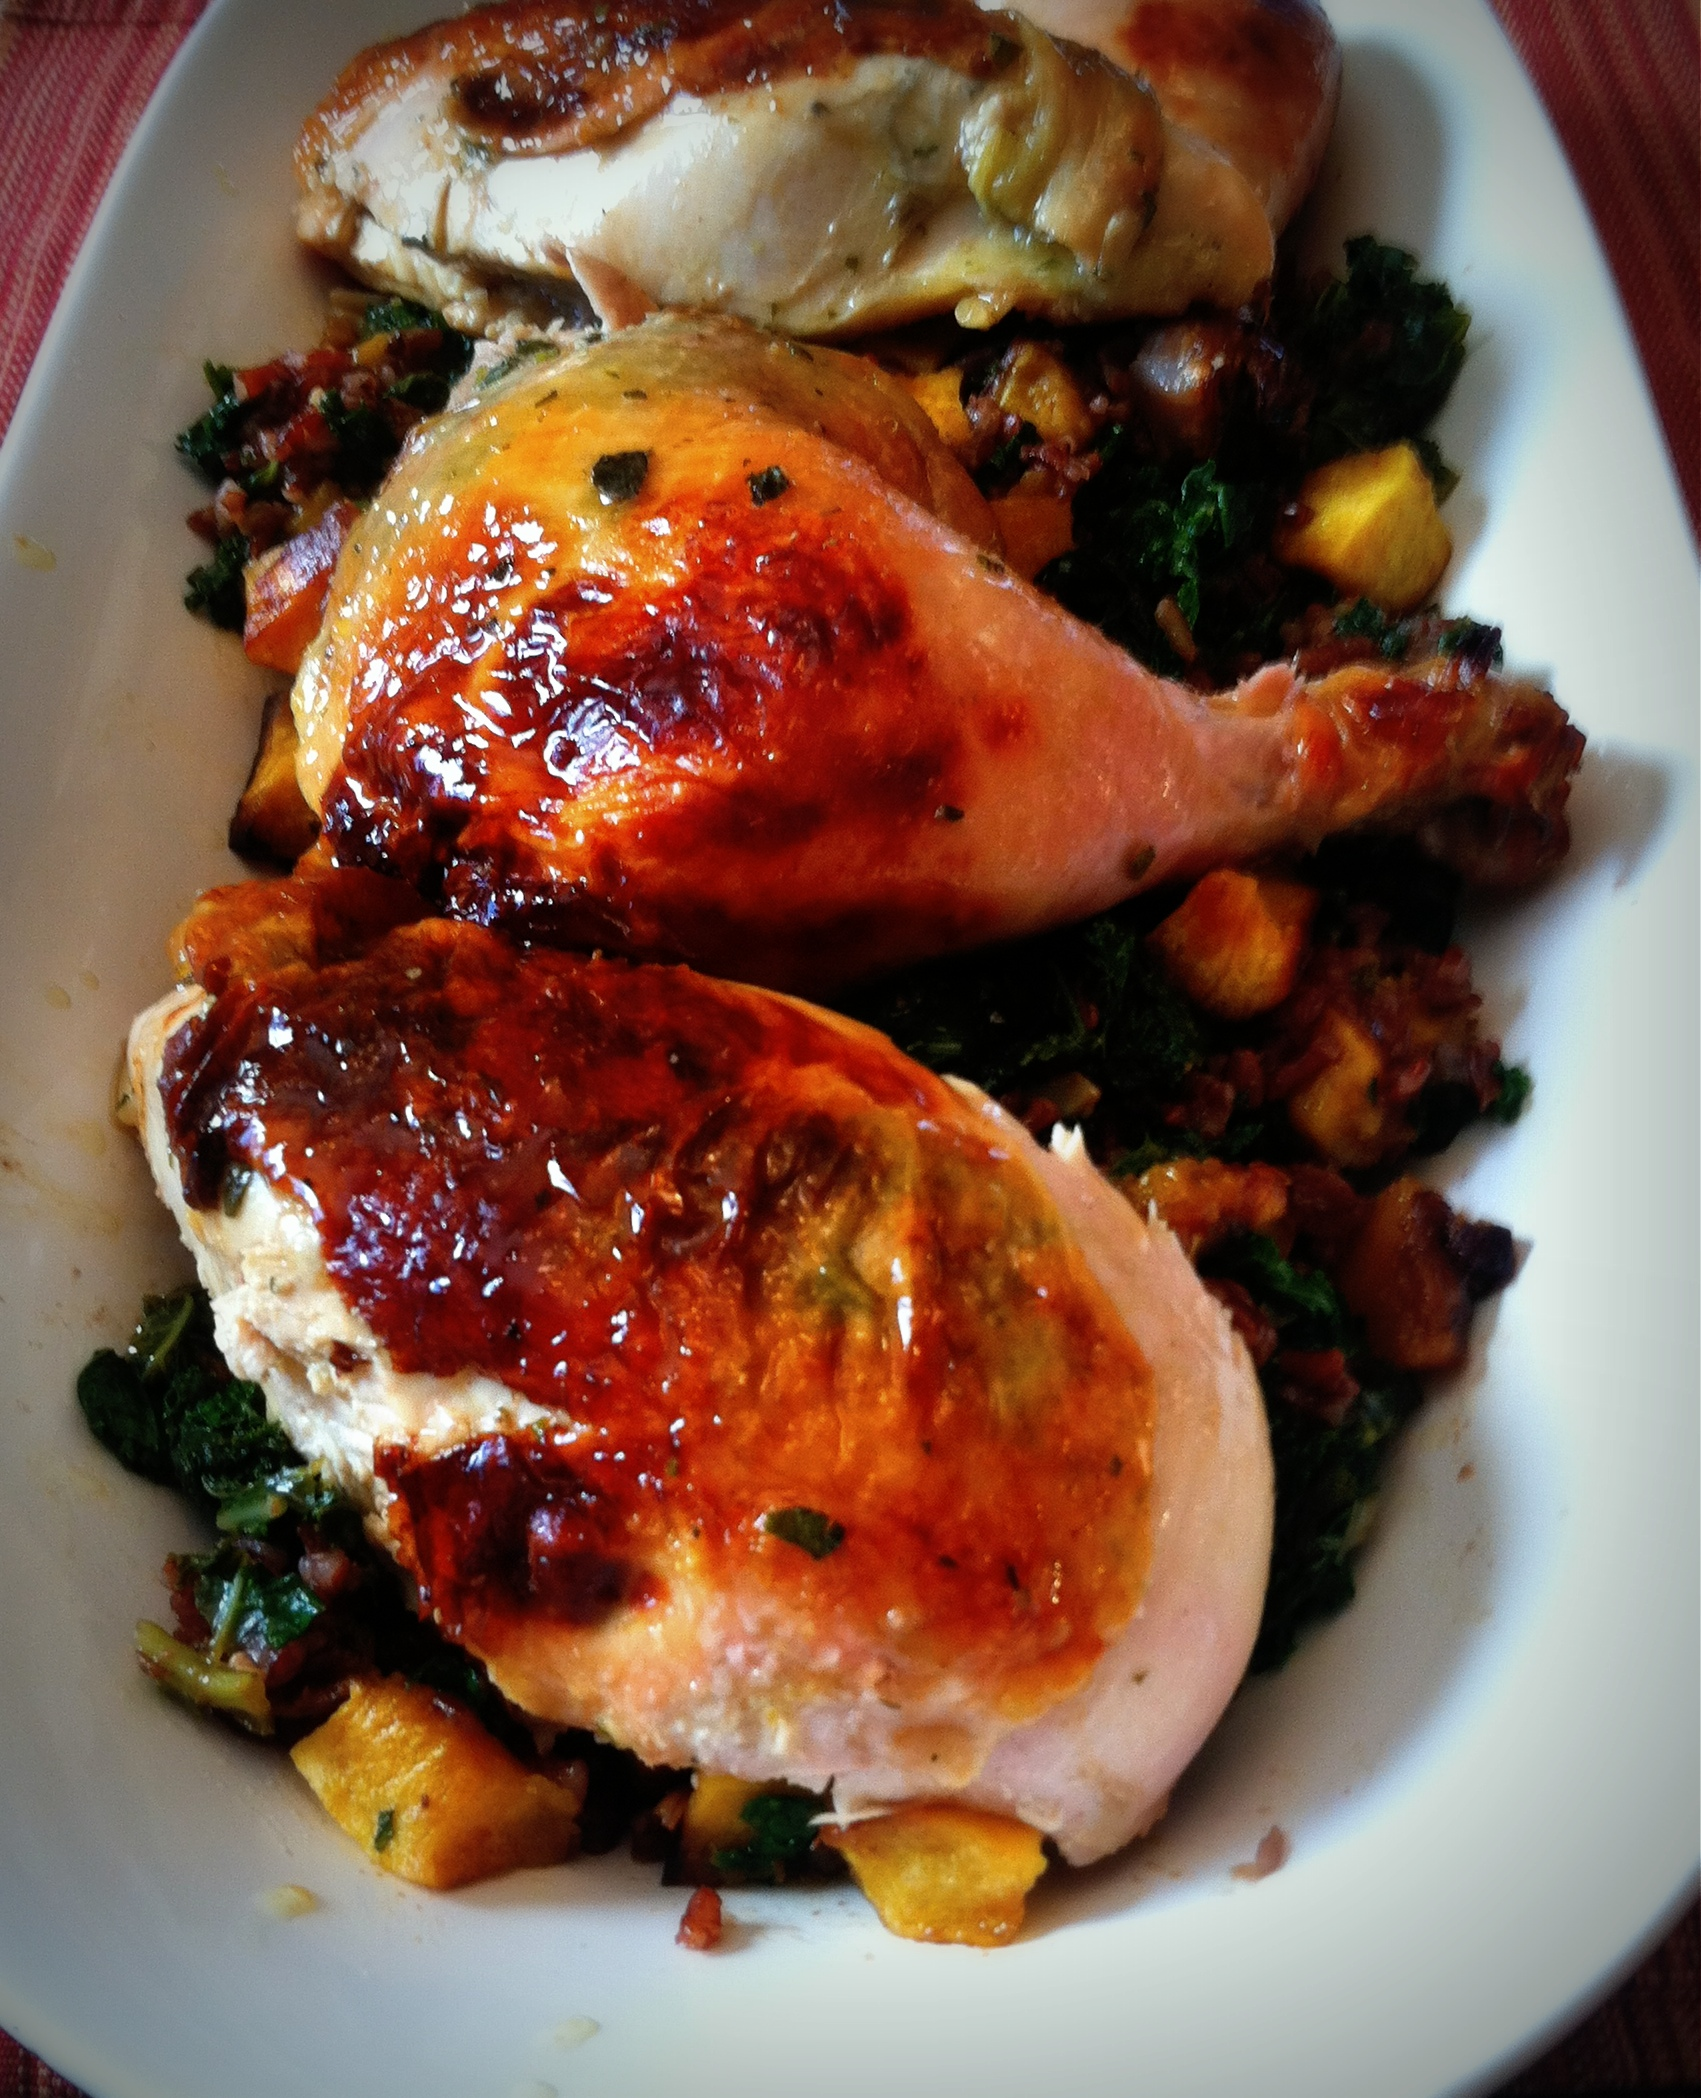 Cider-Brined Chicken With Red Rice, Acorn Squash, Kale